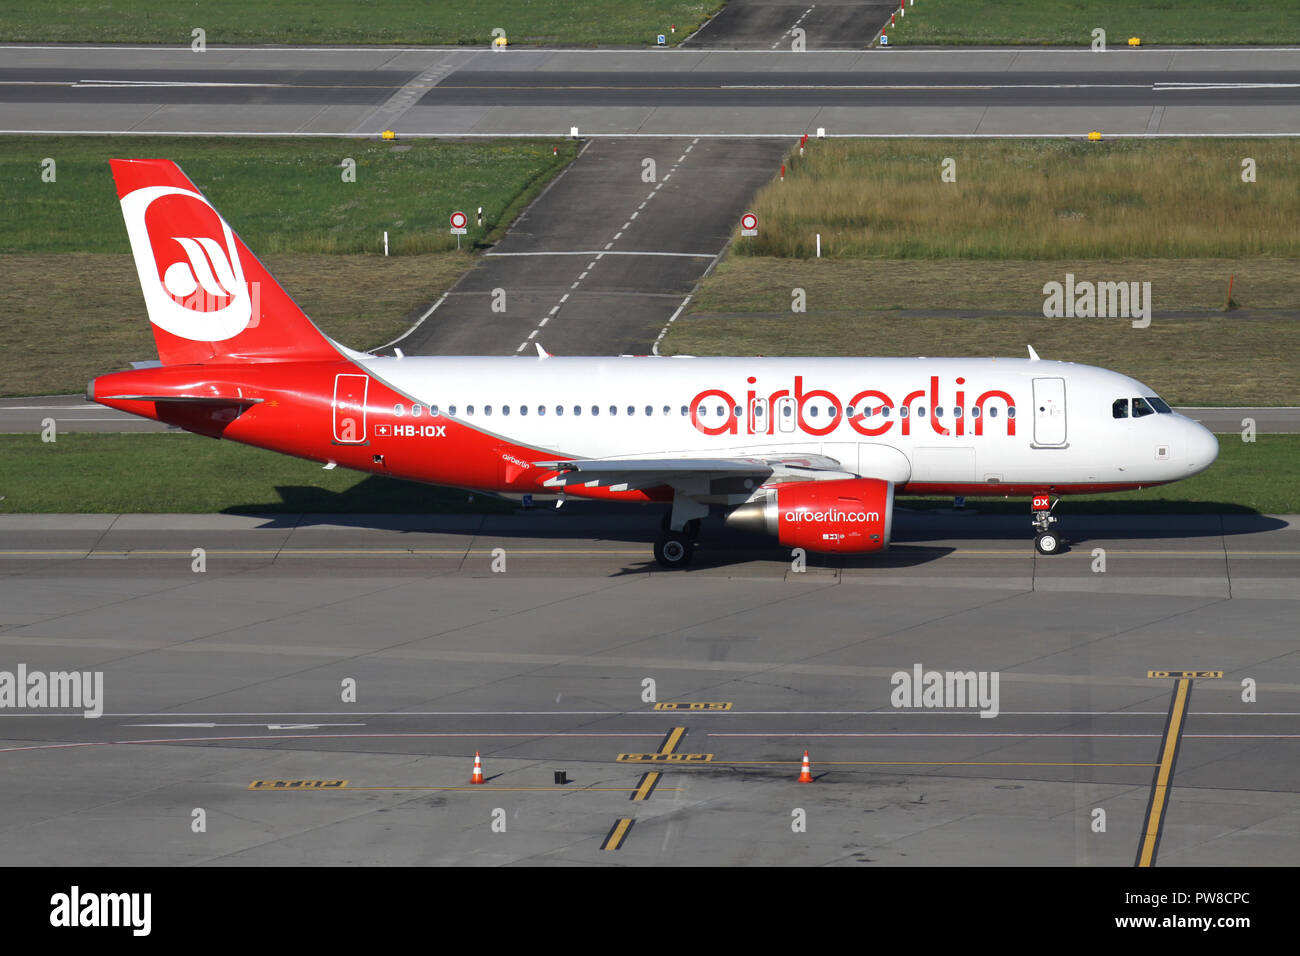 Swiss Belair Airbus A319-100 in Air Berlin livery with registration HB-IOX on taxiway of Zurich Airport. - Stock Image